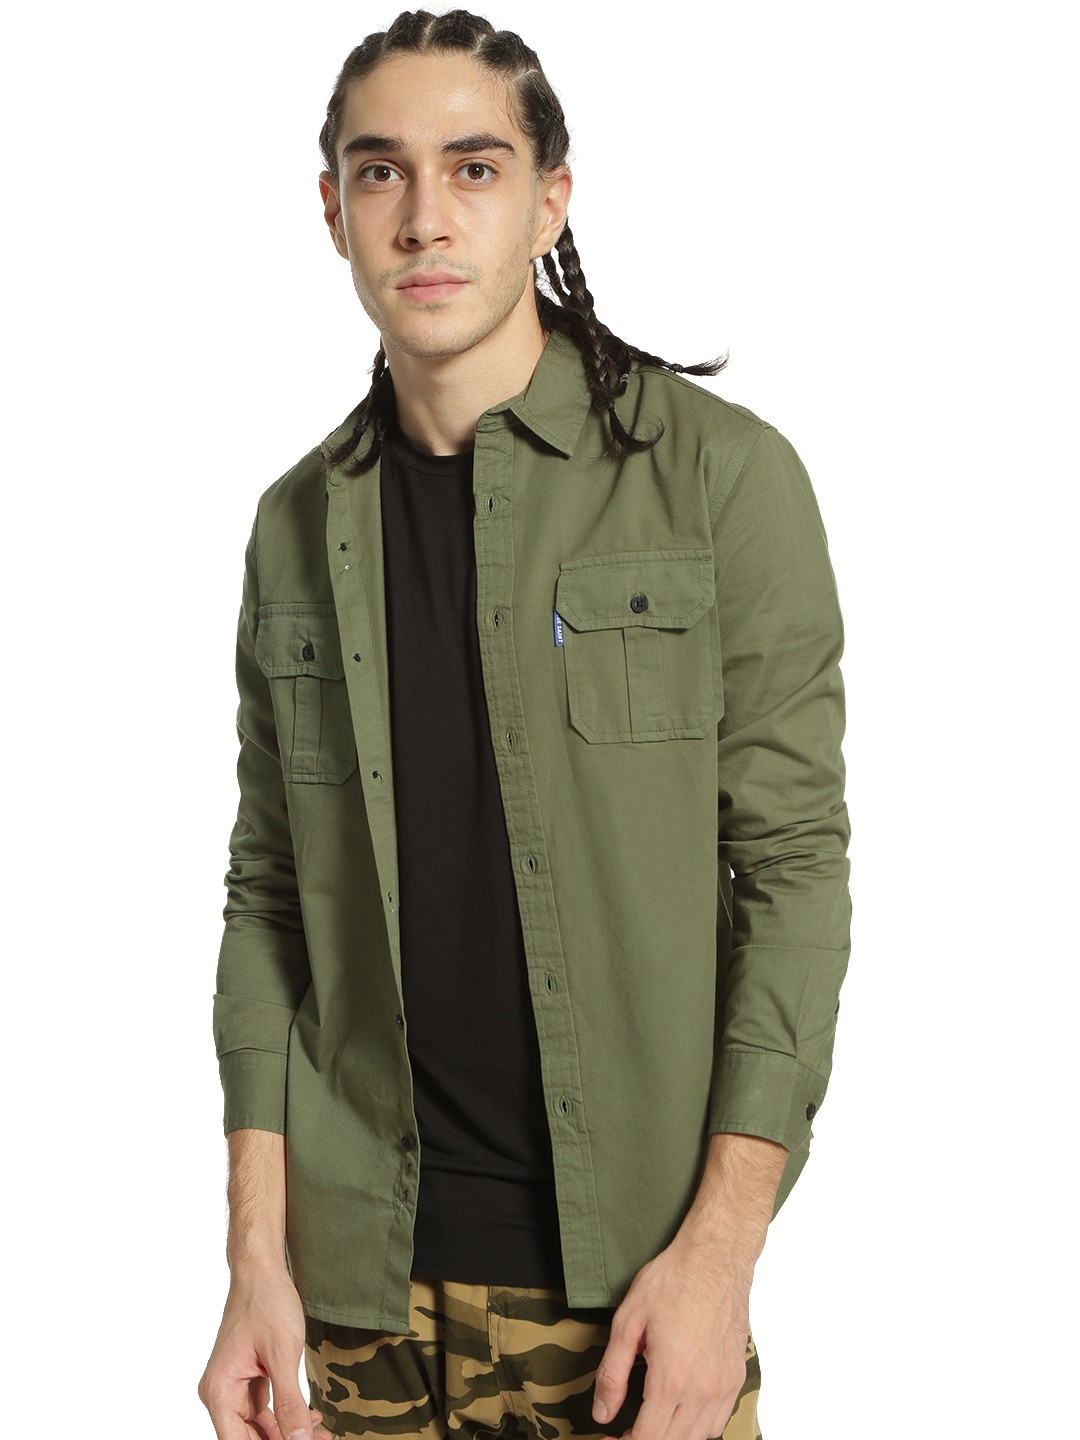 Blue Saint Green Basic Twin Pocket Shirt 1